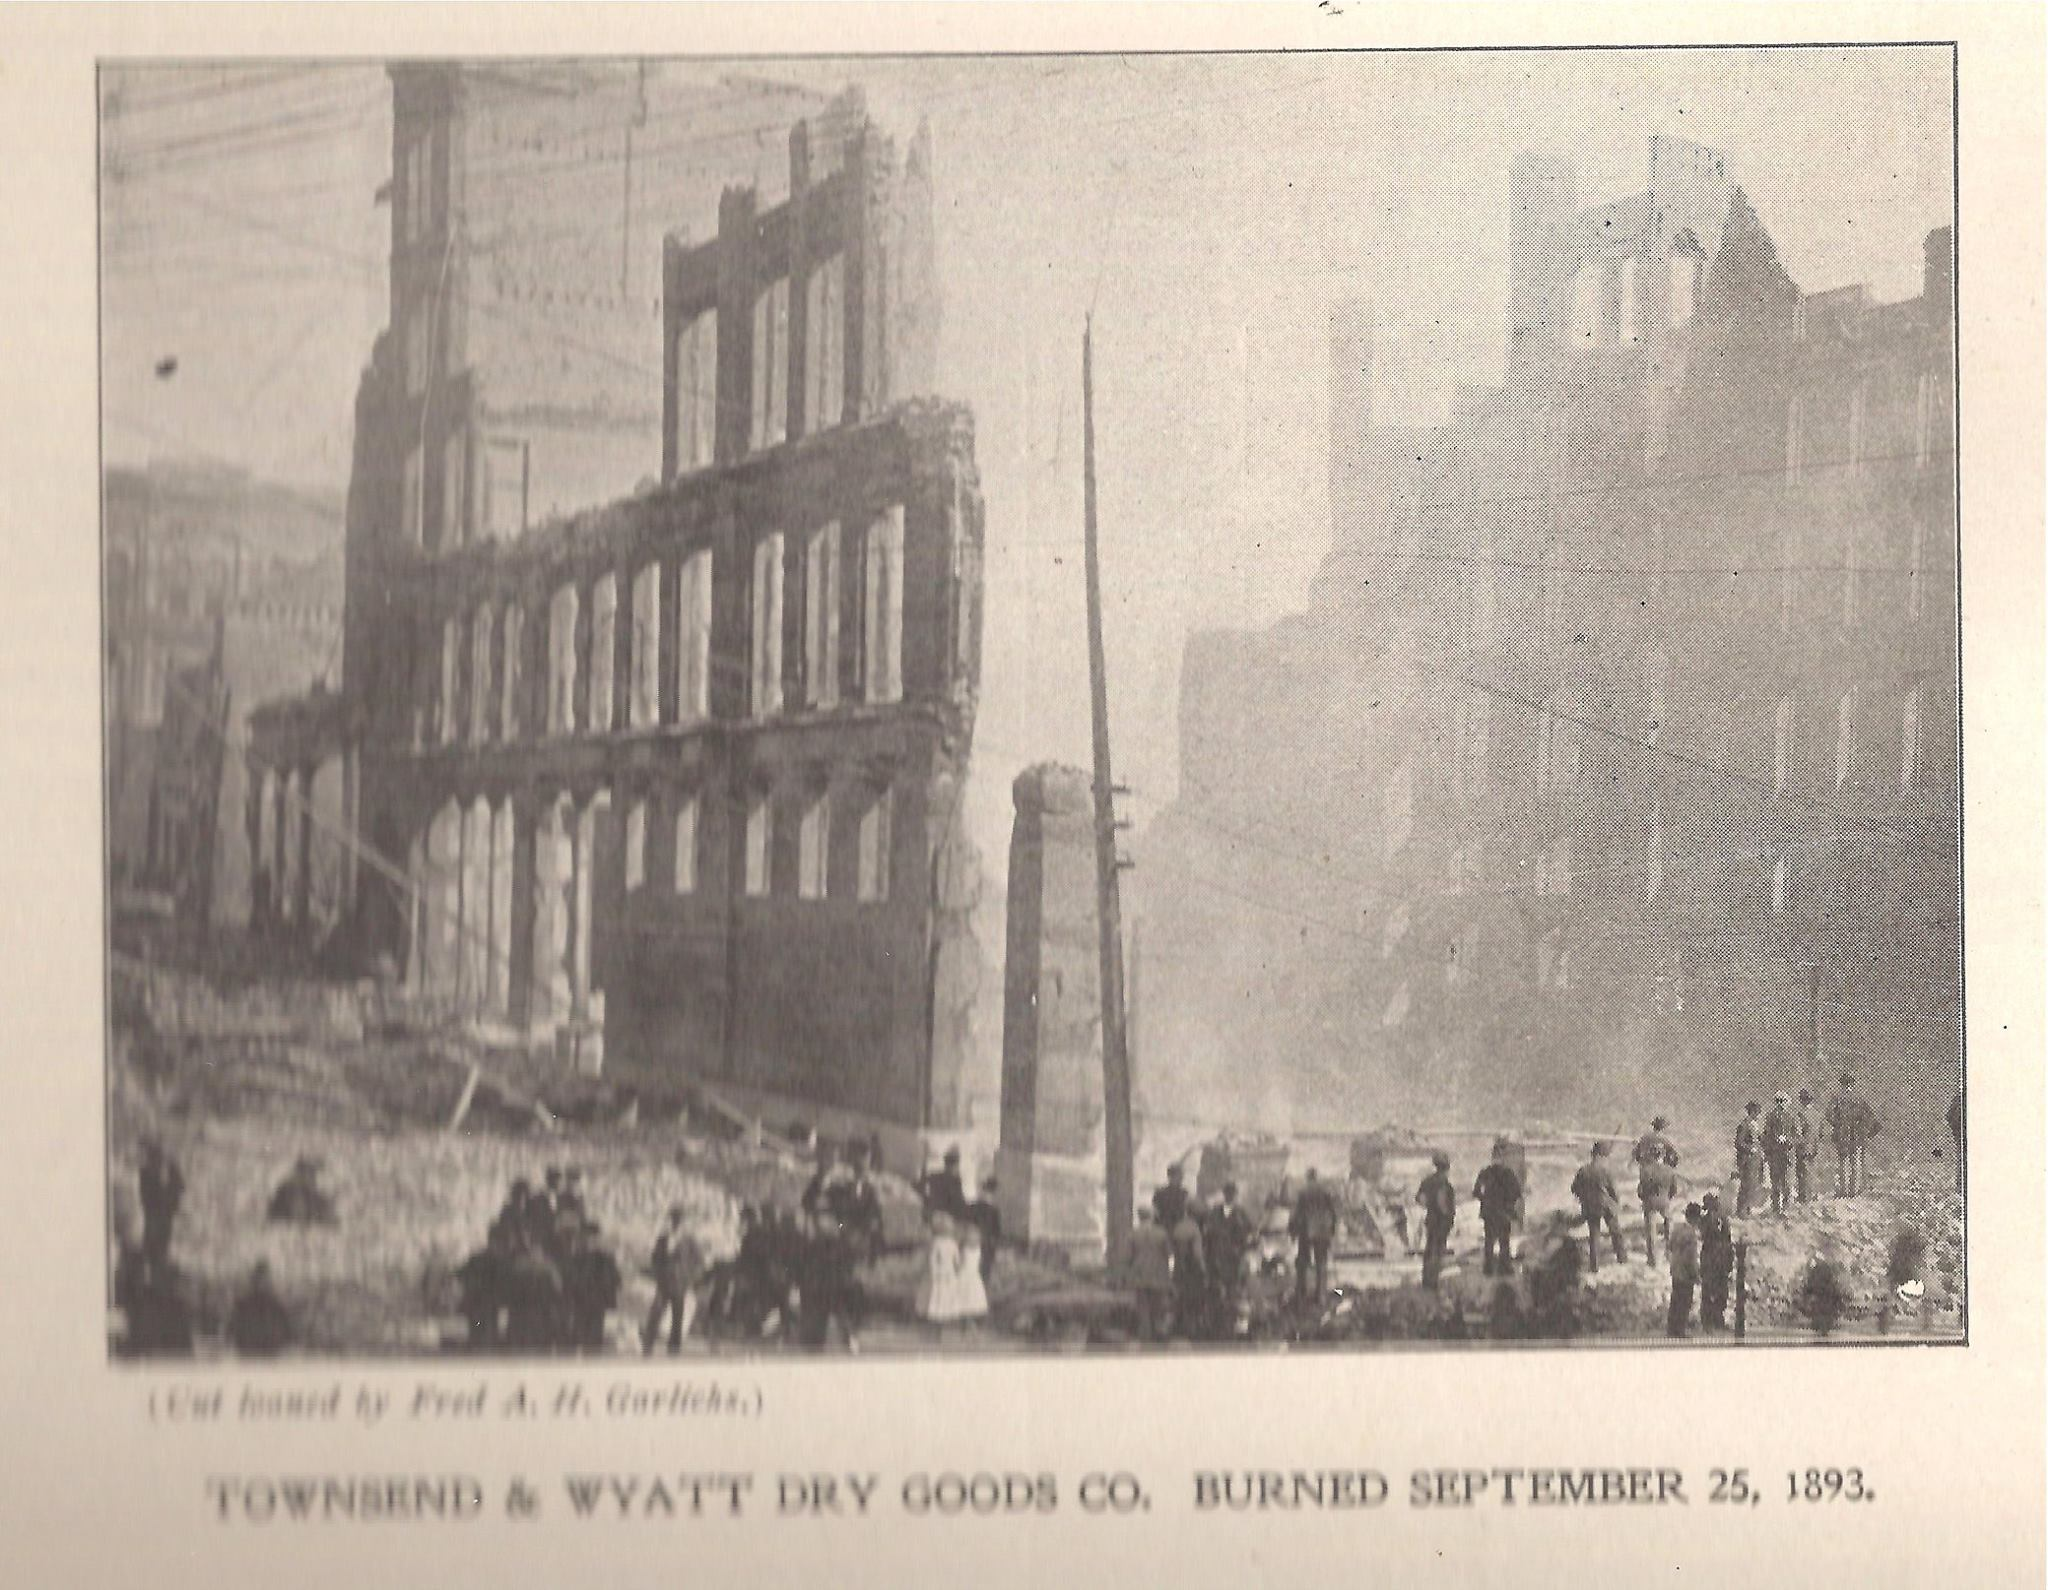 Townsend and Wyatt Dry Goods burned September 25th 1893